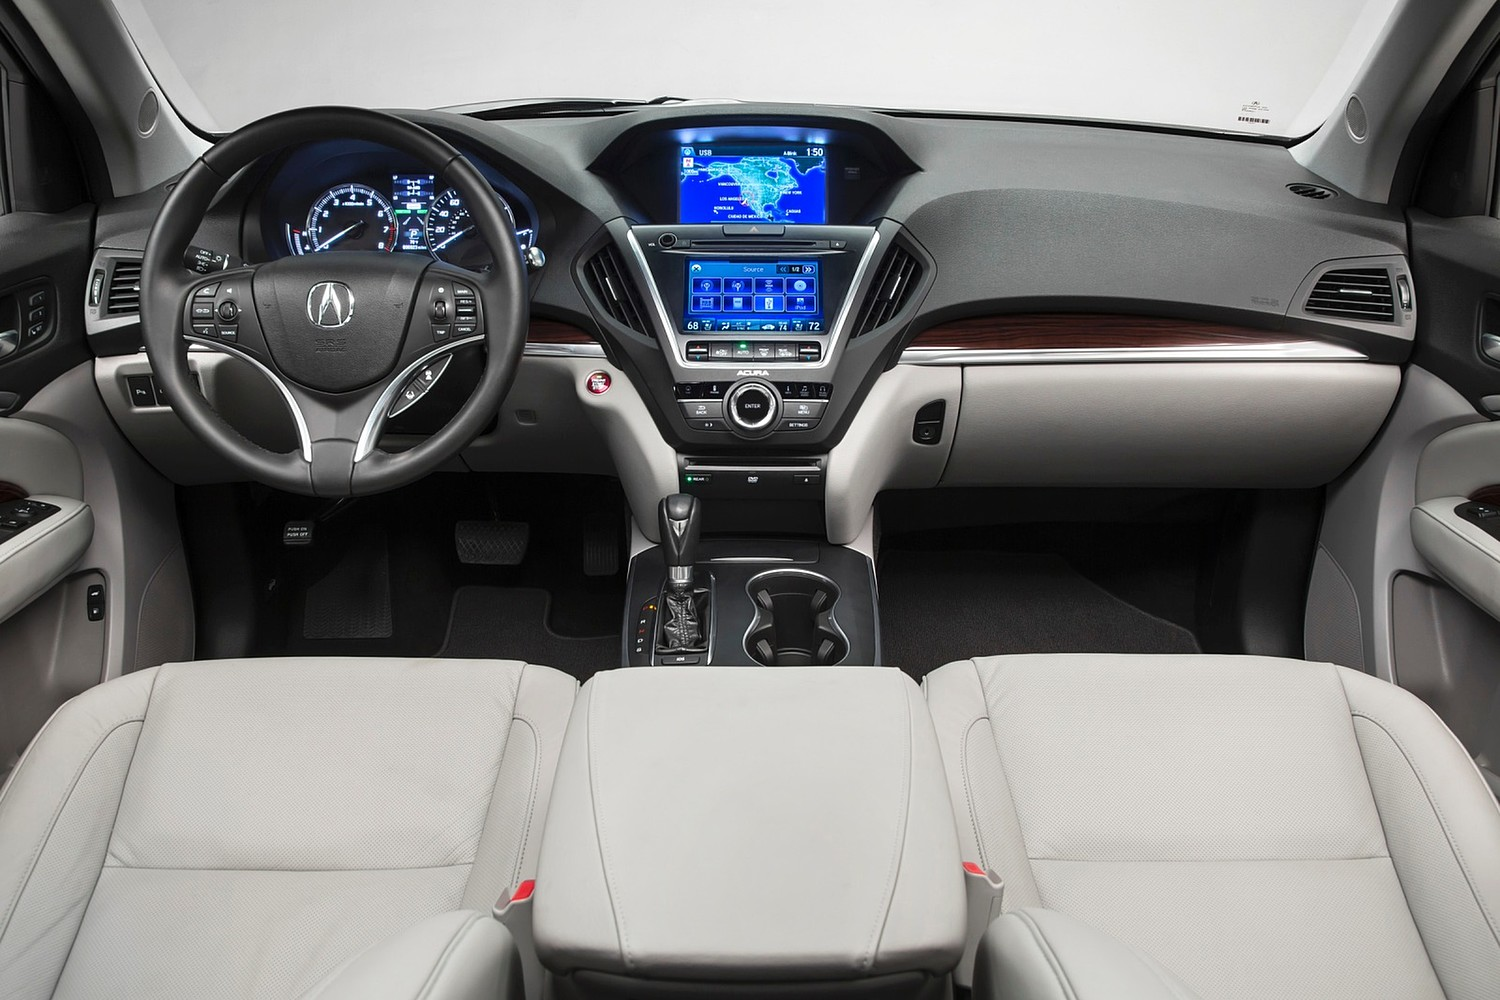 Acura MDX SH-AWD w/Technology and Entertainment Packages 4dr SUV Dashboard (2014 model year shown)